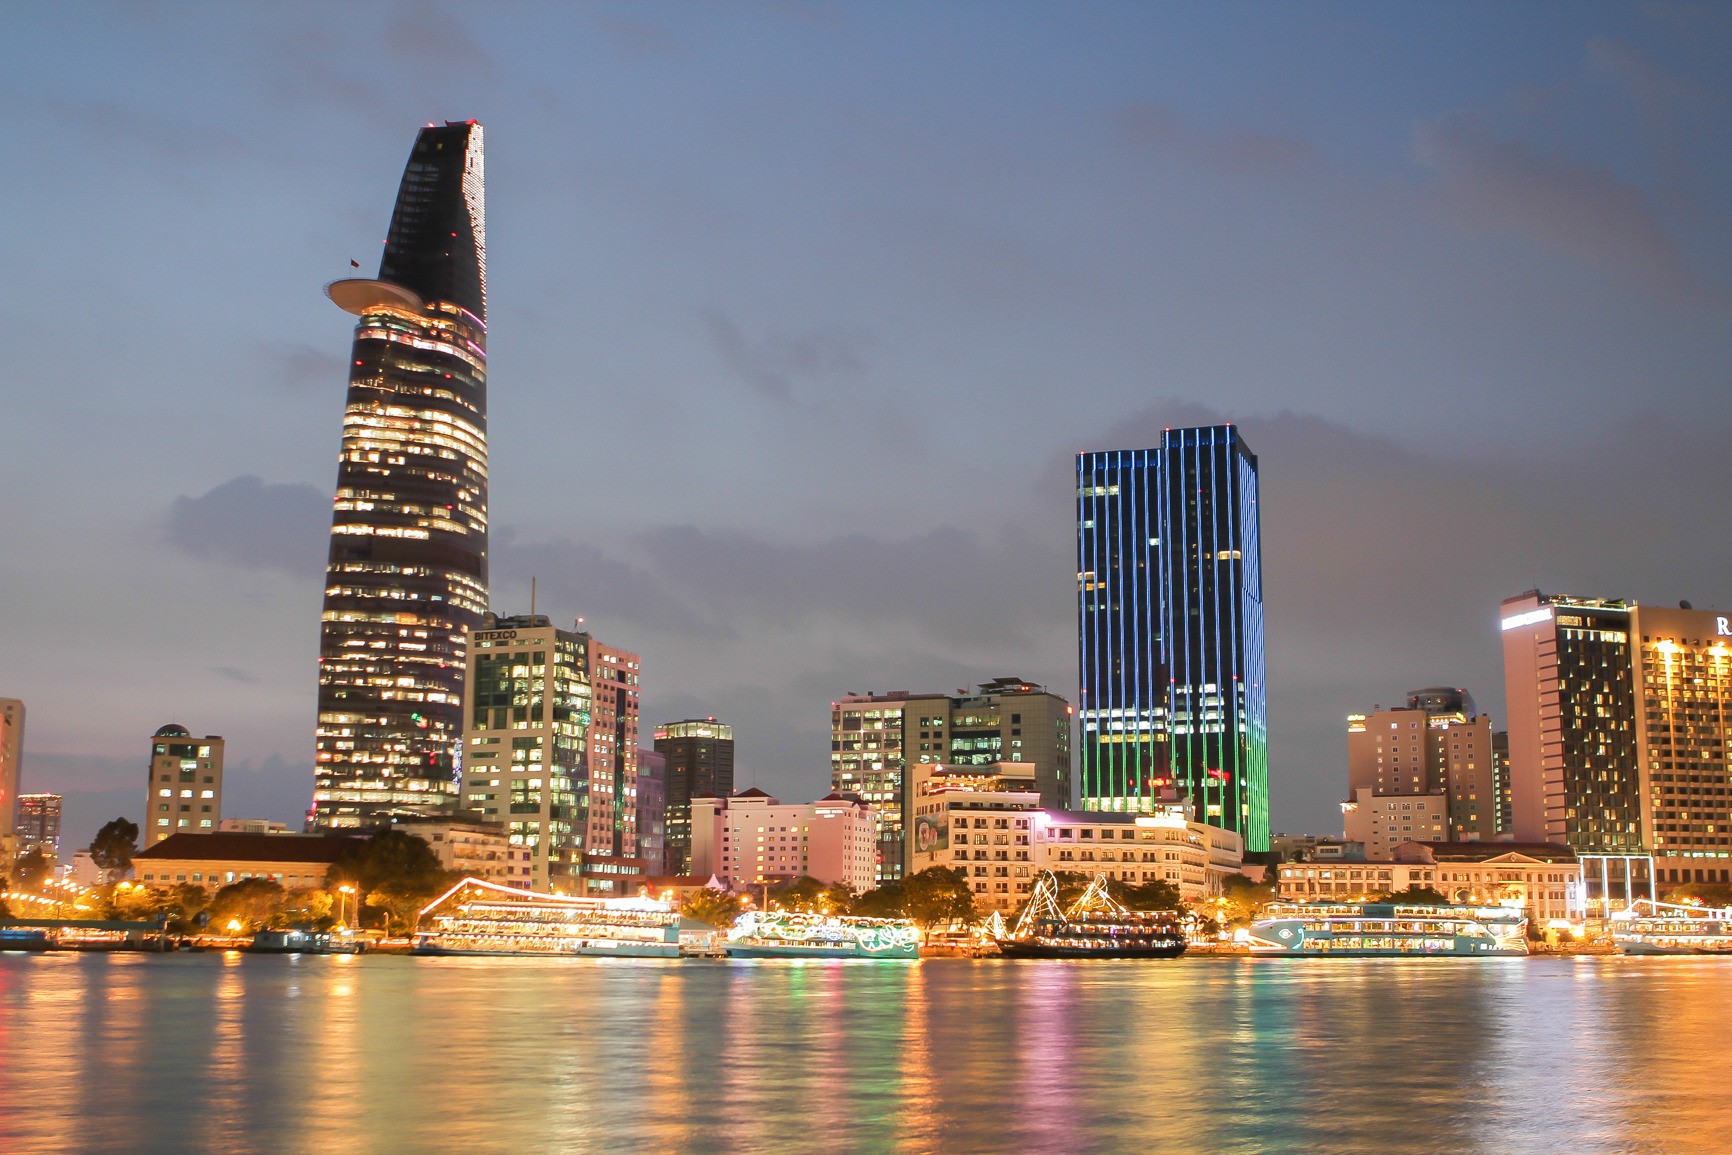 Vietnam's luxury property market draws well-heeled domestic buyers and foreign investors